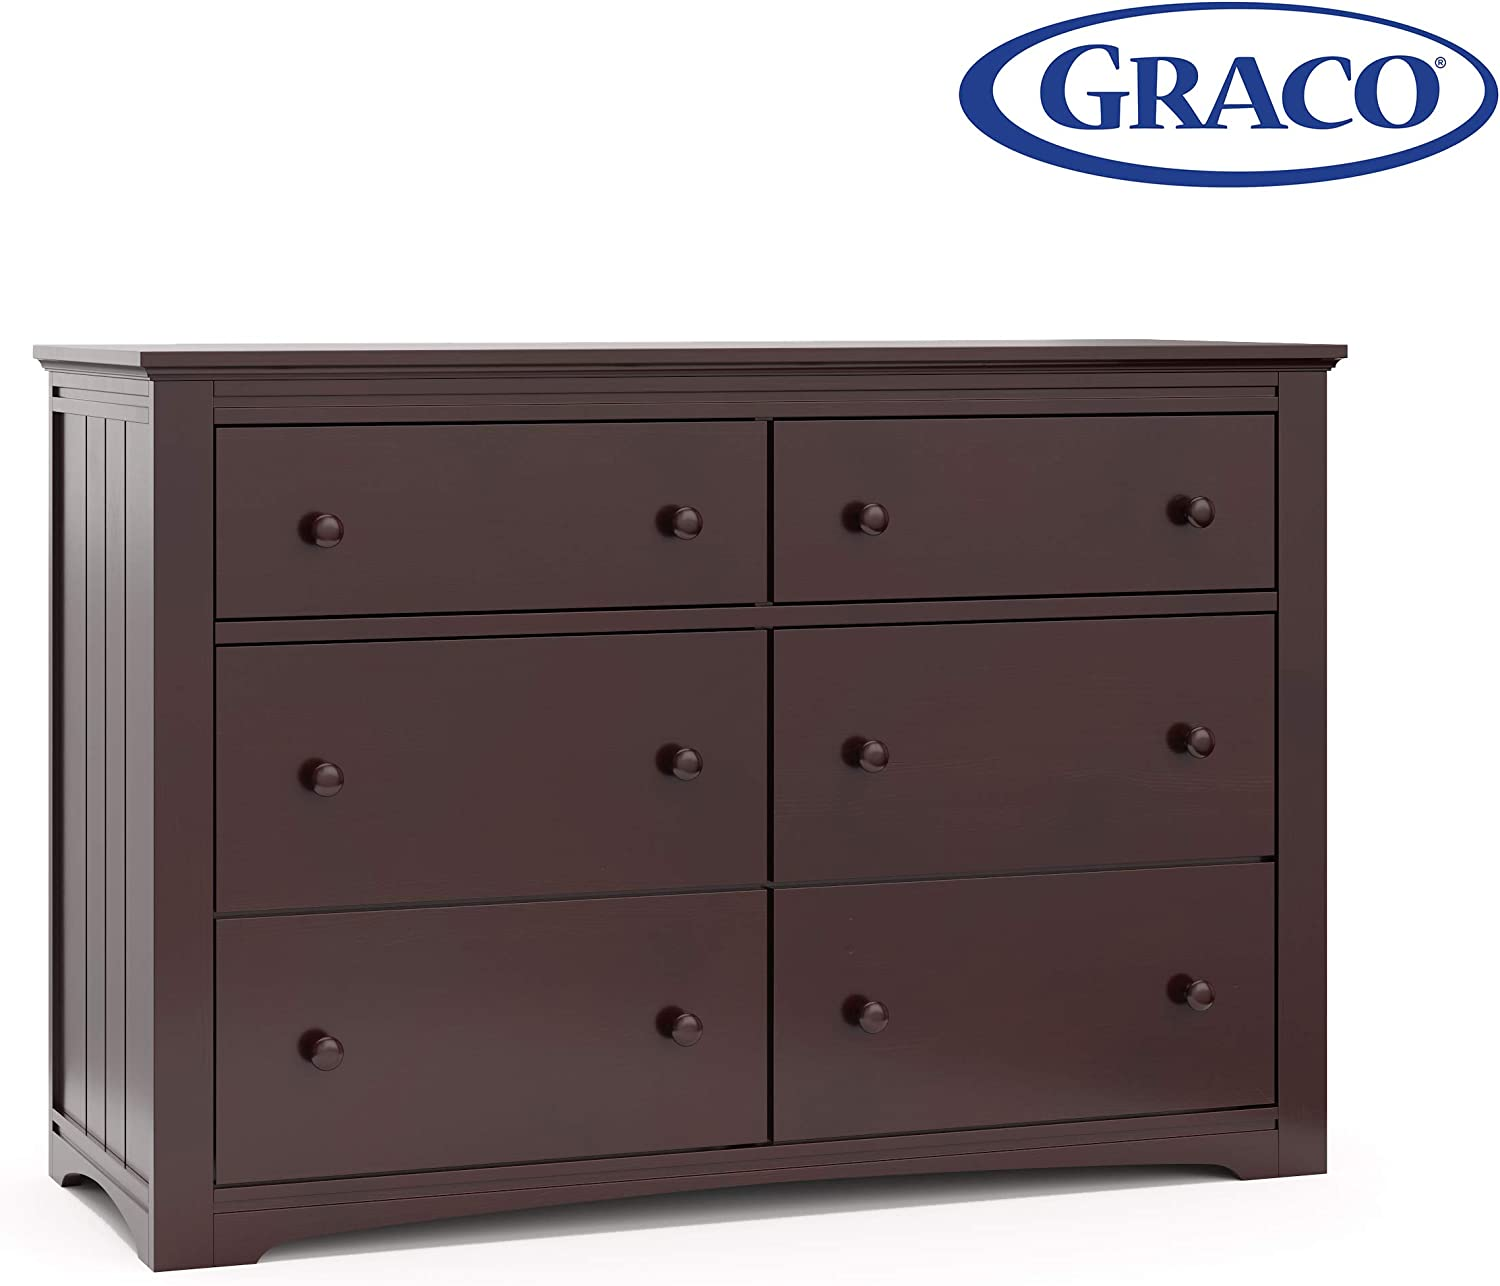 Graco Hadley 6 Drawer Dresser - Espresso, Easy New Assembly Process, Universal Design, Durable Steel Hardware and Euro-Glide Drawers with Safety Stops, Coordinates with Any Nursery